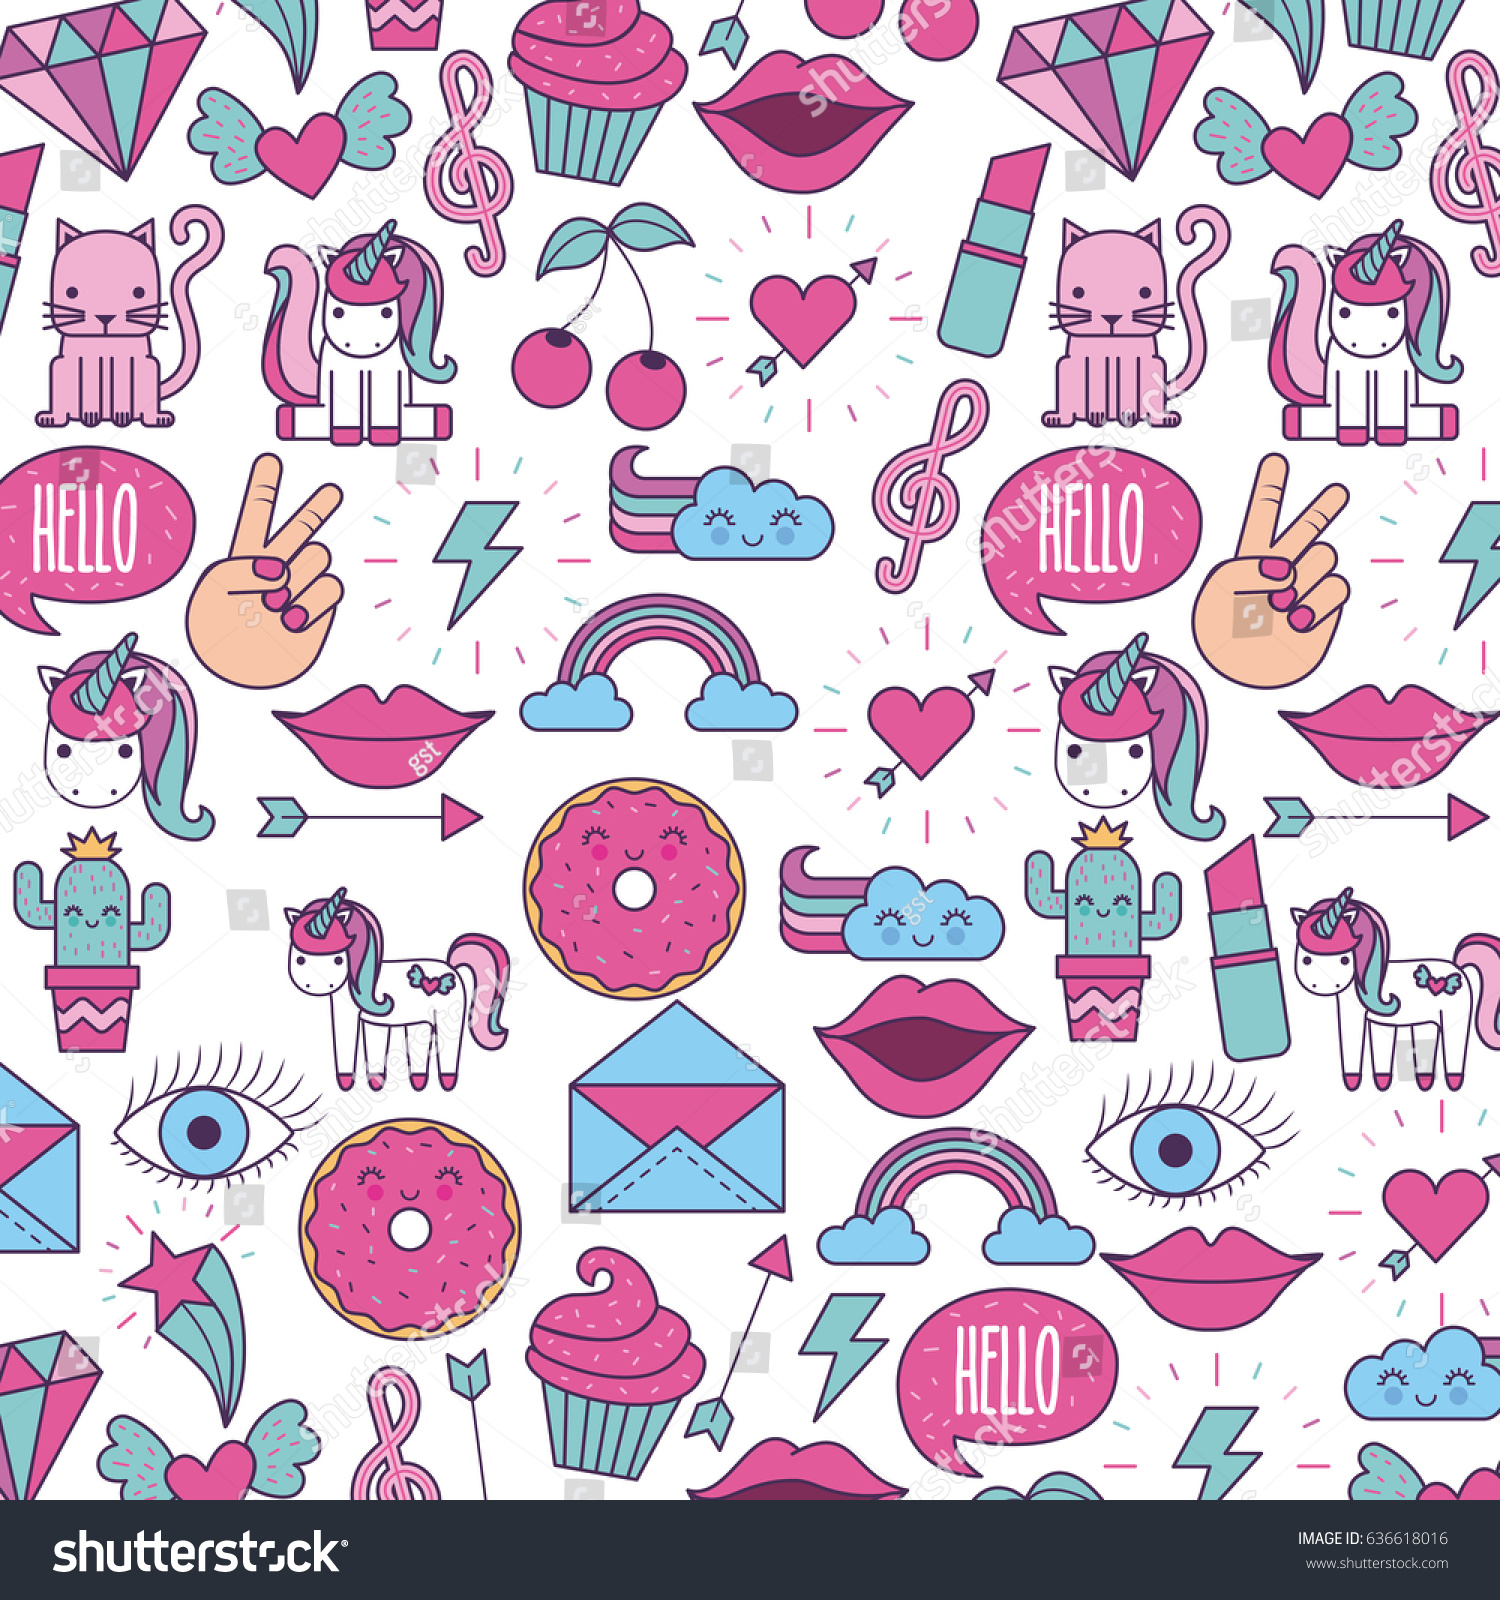 Girly Icon Image Stock-Vektorgrafik 636618016 – Shutterstock